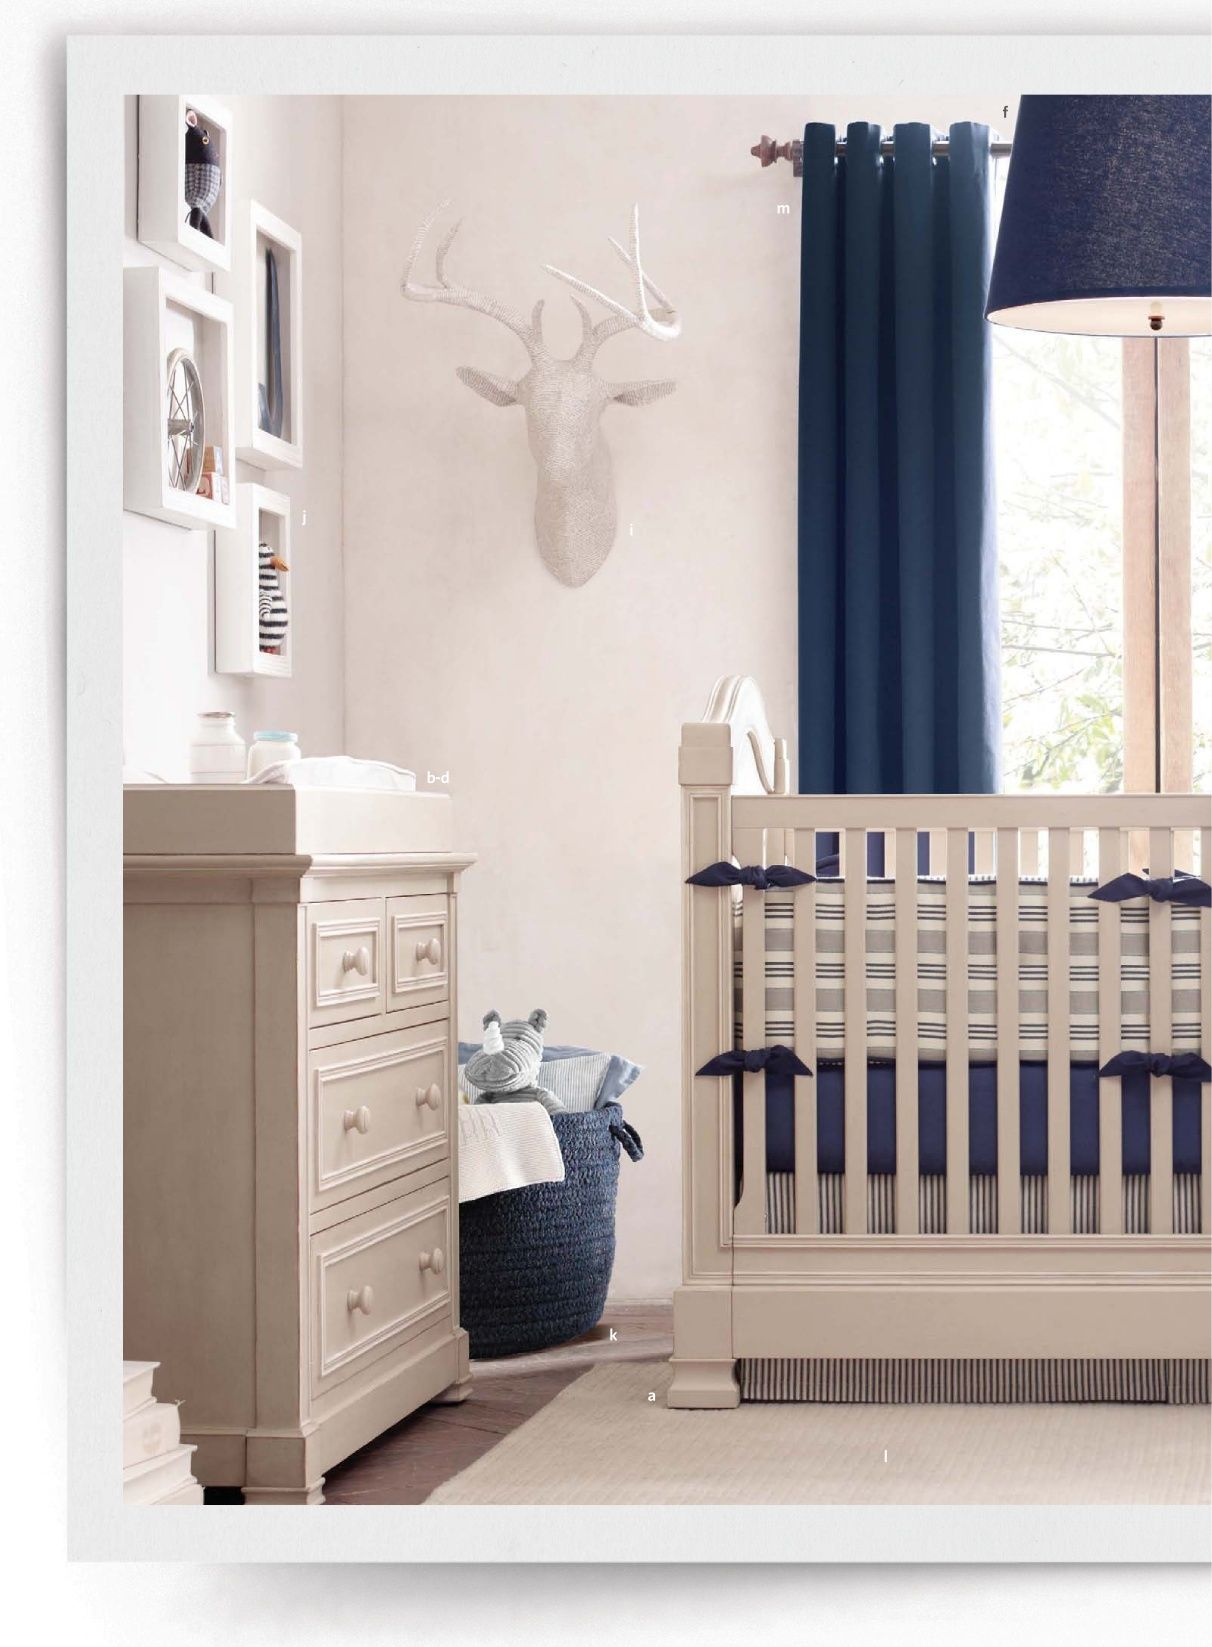 Babyzimmer Möbel Maritim Love The Navy Maritime Look Home Nursery Bedding